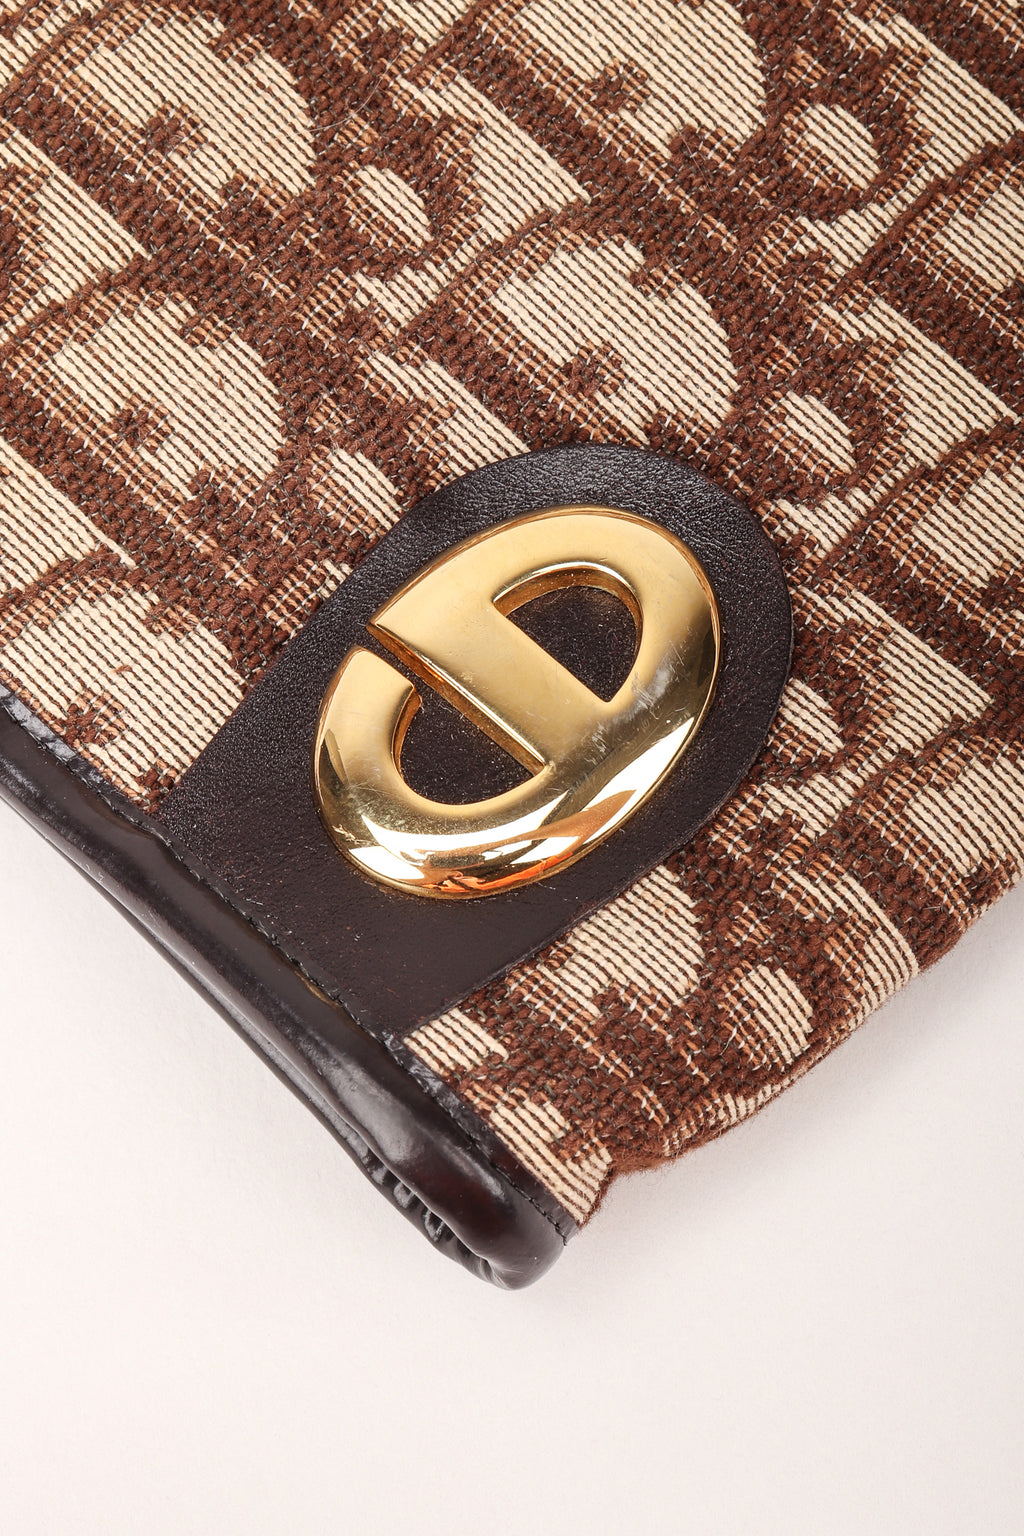 Recess Los Angeles Designer Consignment Vintage Christian Dior Monogram Logo Twill Frame Clutch Purse